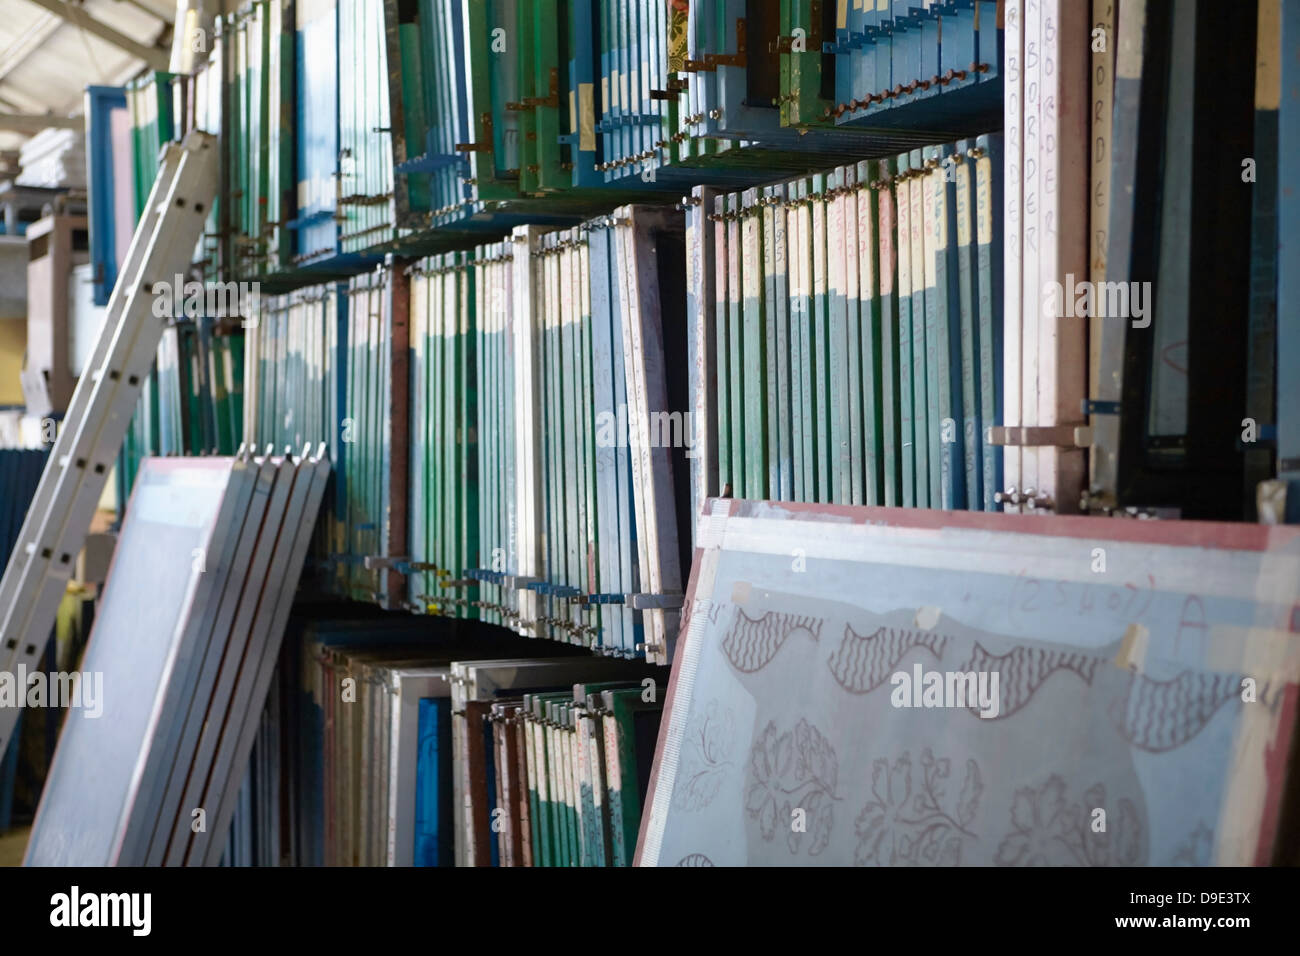 Screen printing frames in textiles factory Stock Photo: 57473386 - Alamy